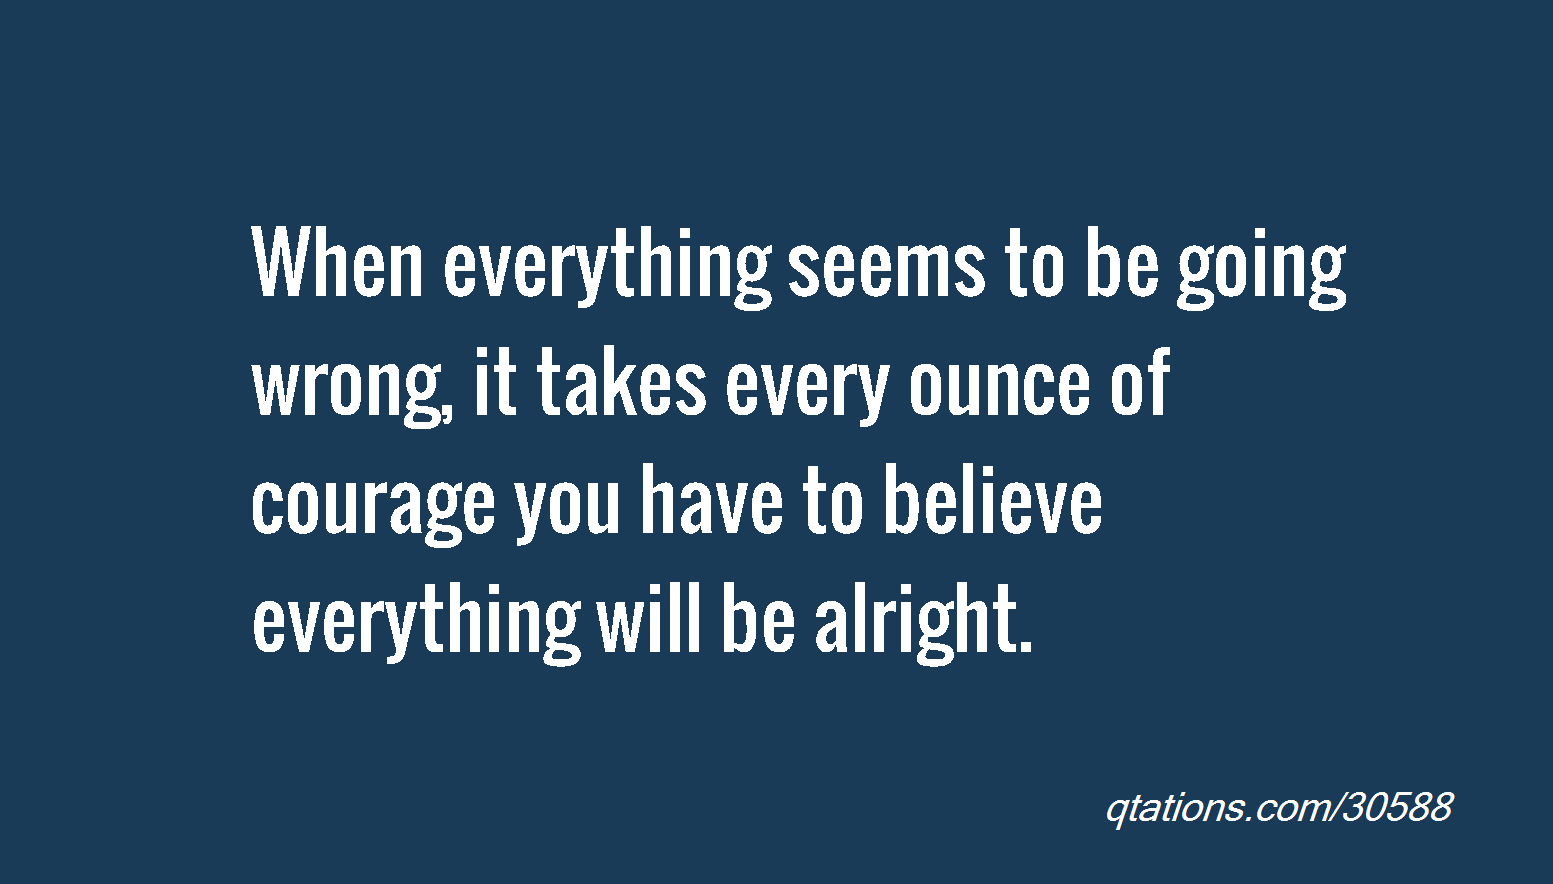 Everything Going Wrong Quotes. QuotesGram